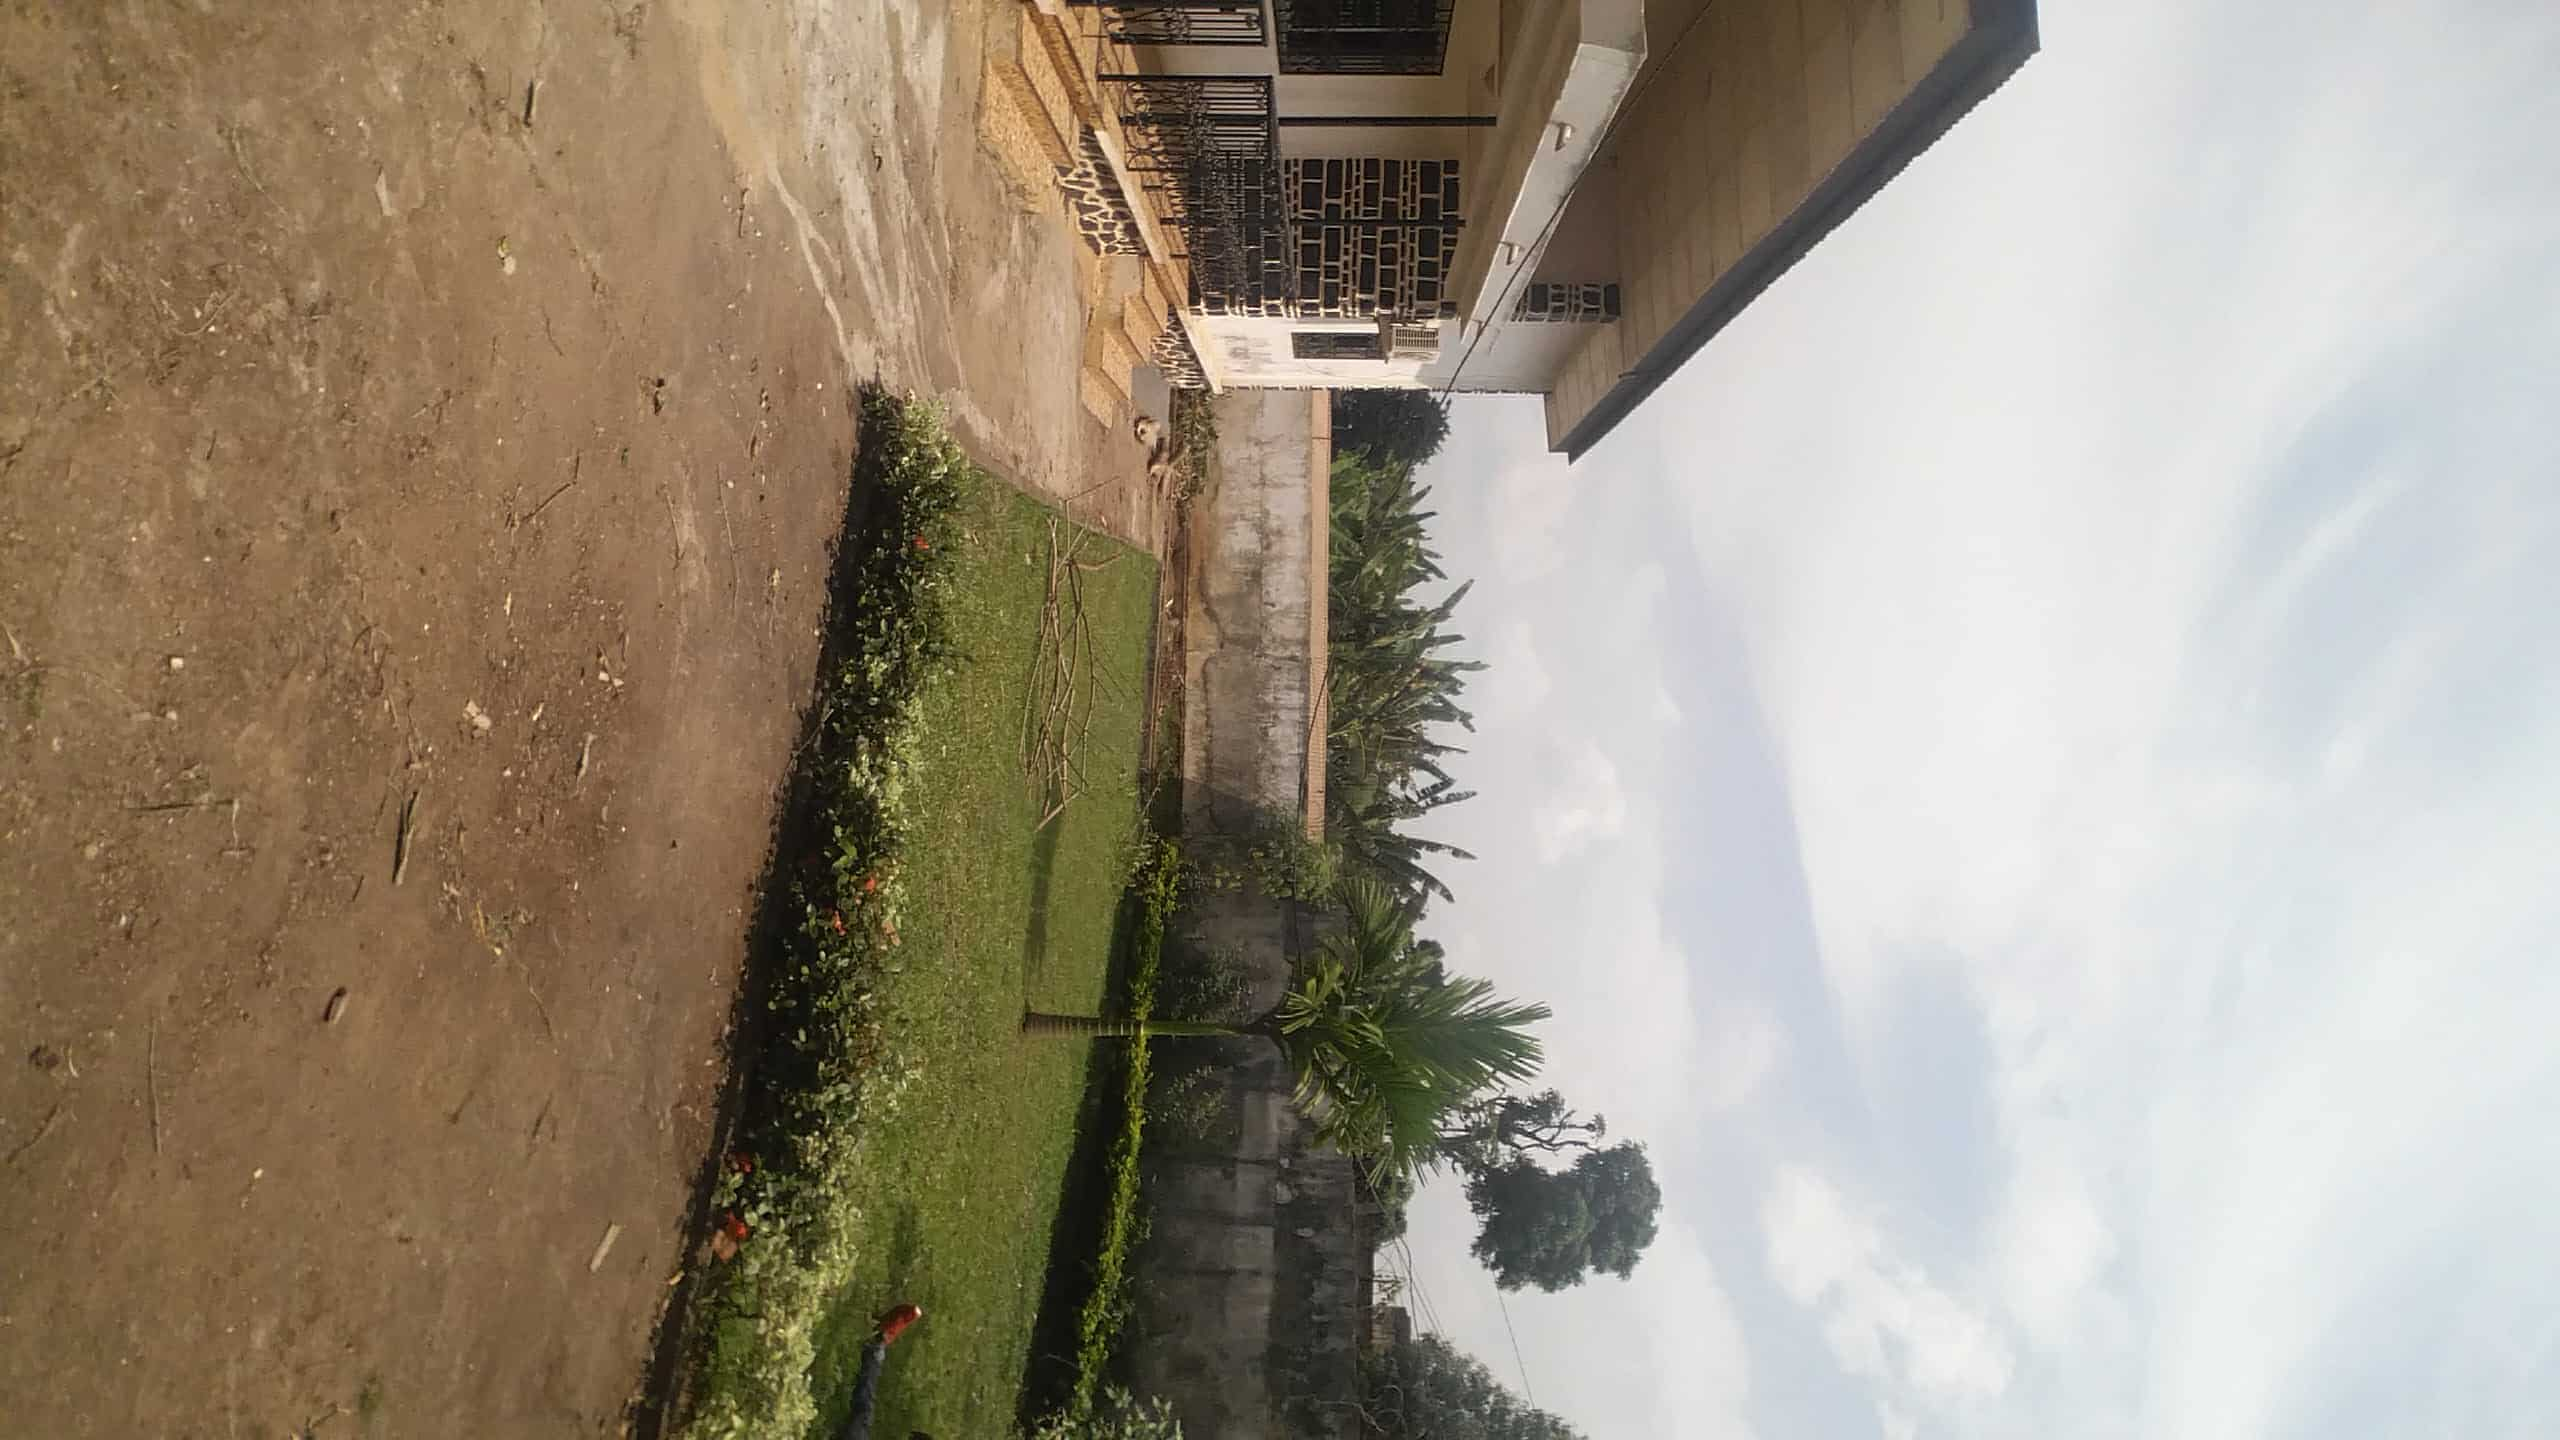 House (Villa) to rent - Yaoundé, Bastos, bastos - 1 living room(s), 3 bedroom(s), 2 bathroom(s) - 550 000 FCFA / month